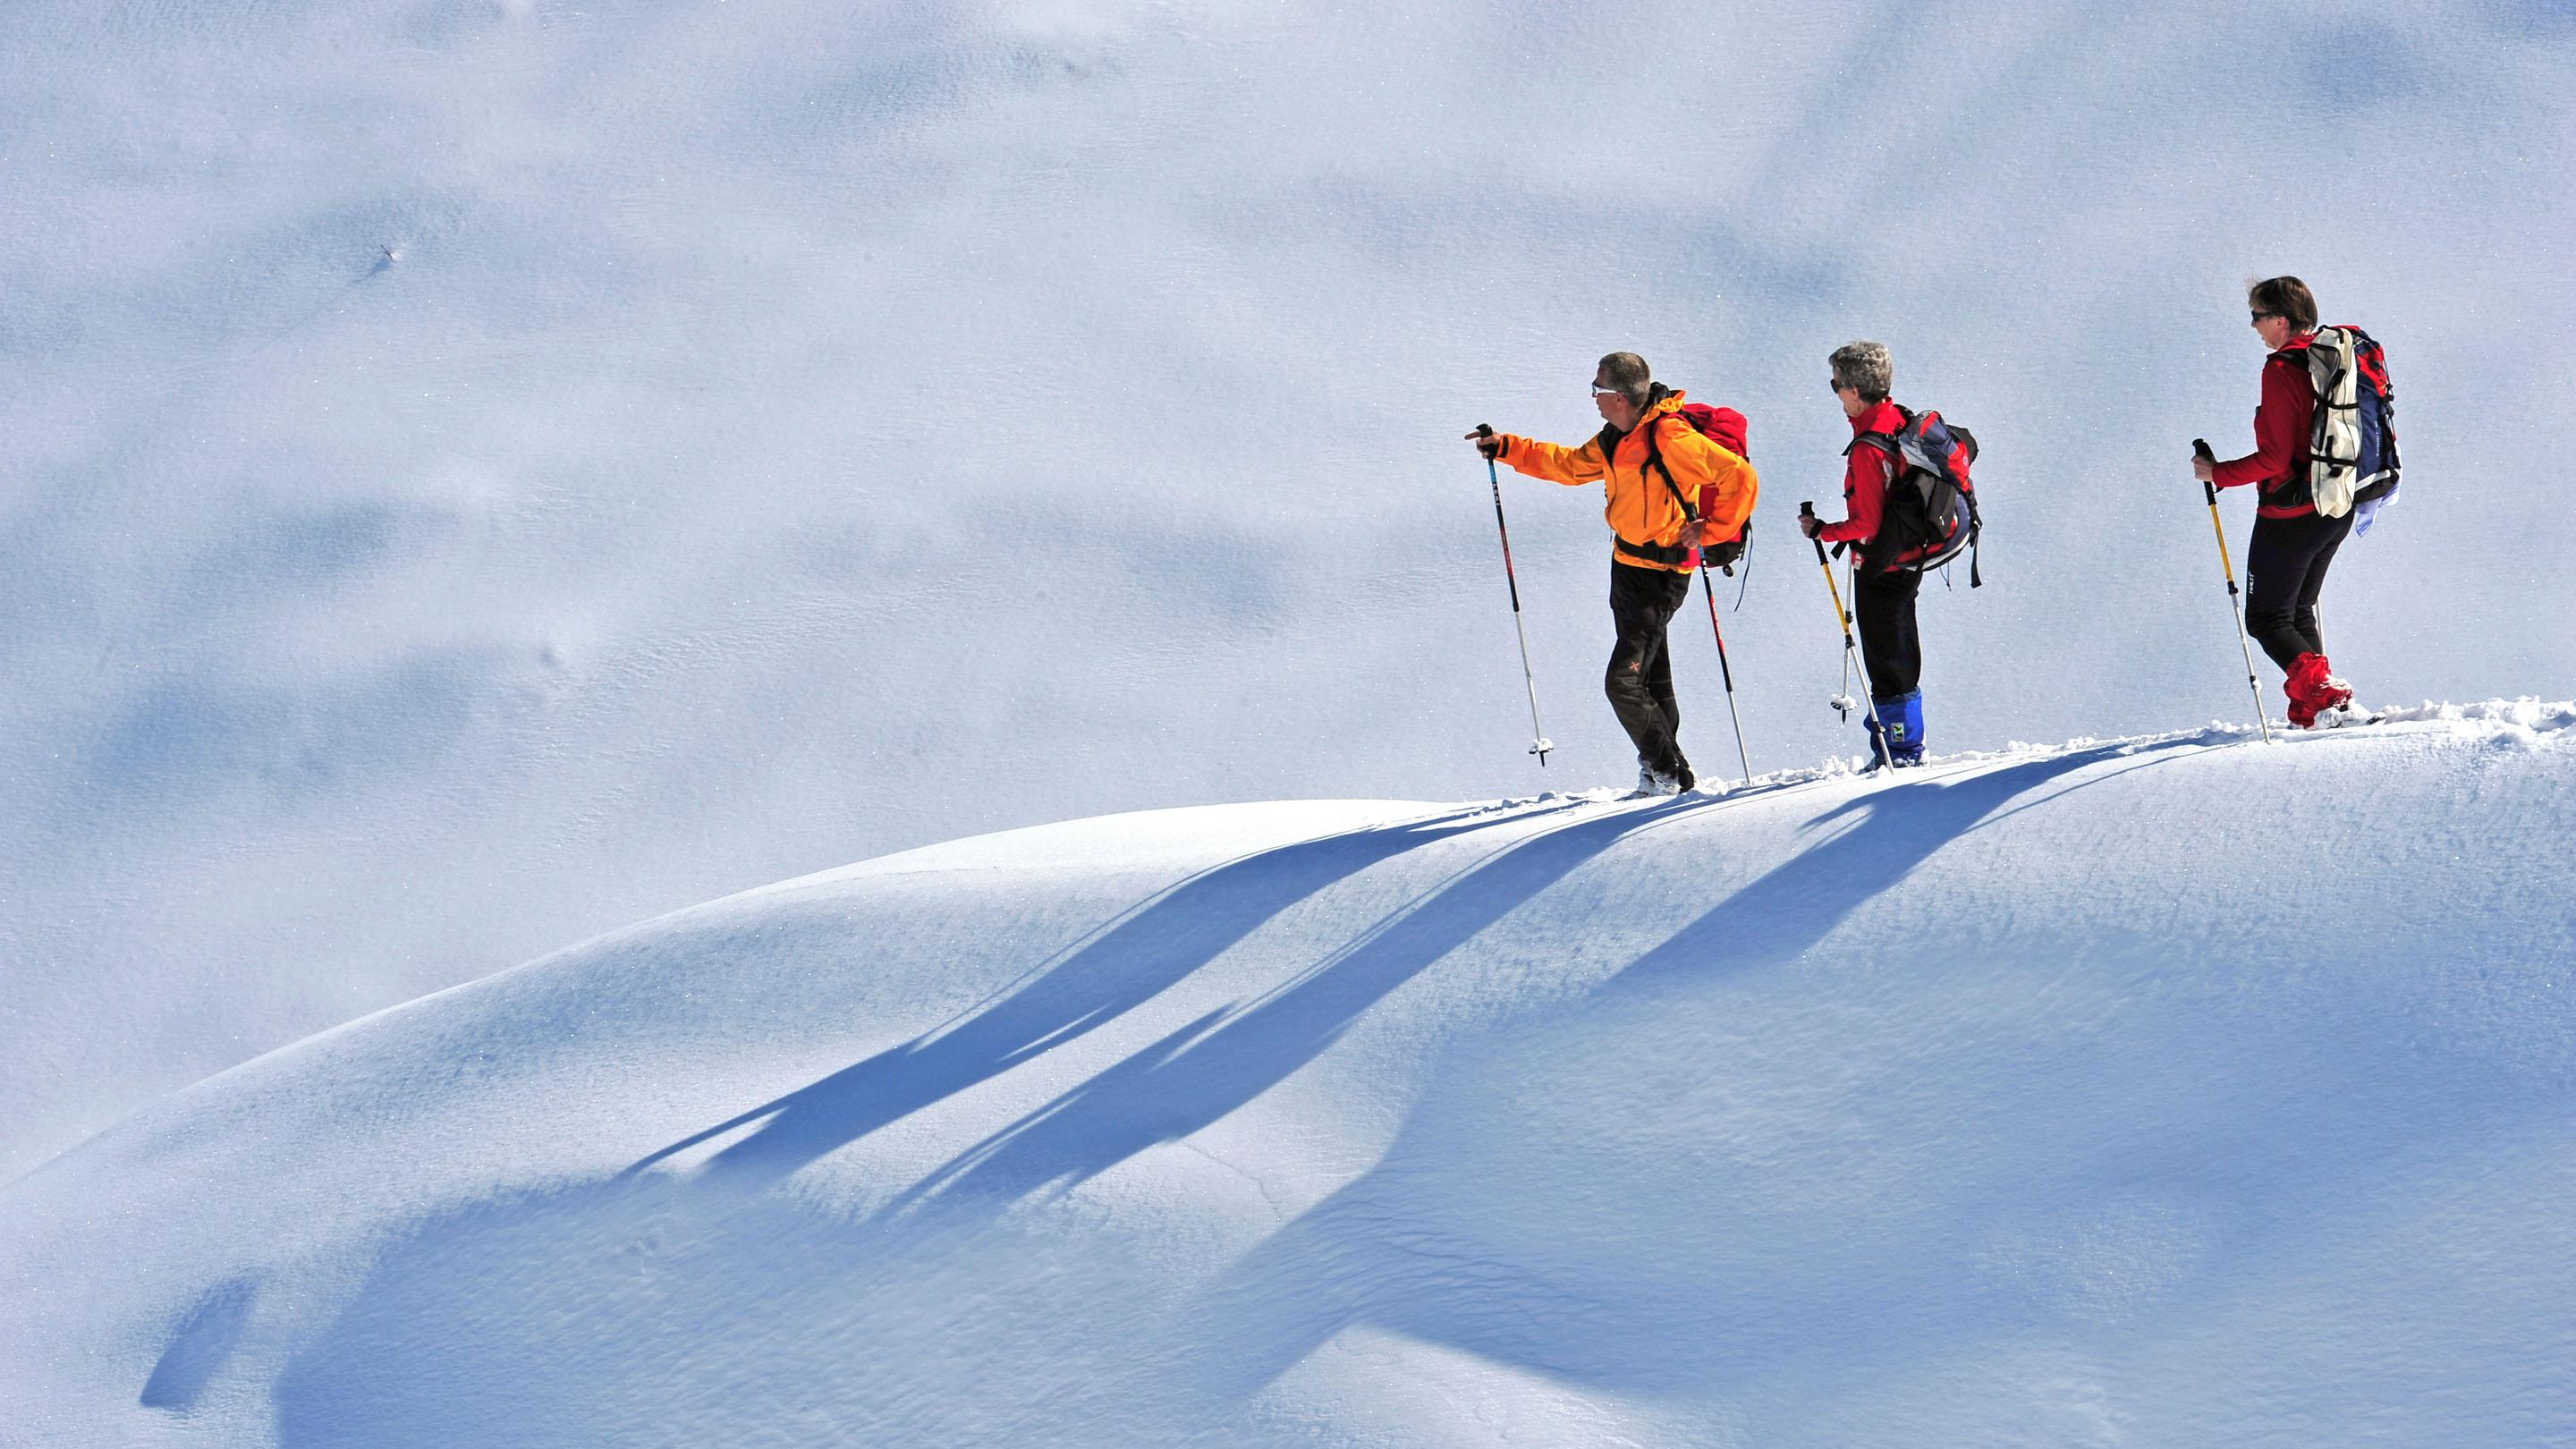 "2Snow shoe experts in the winter of the Dolomites ""Room with a view for Dolomite lovers at Artnatur Dolomites Hotel & Spa"""